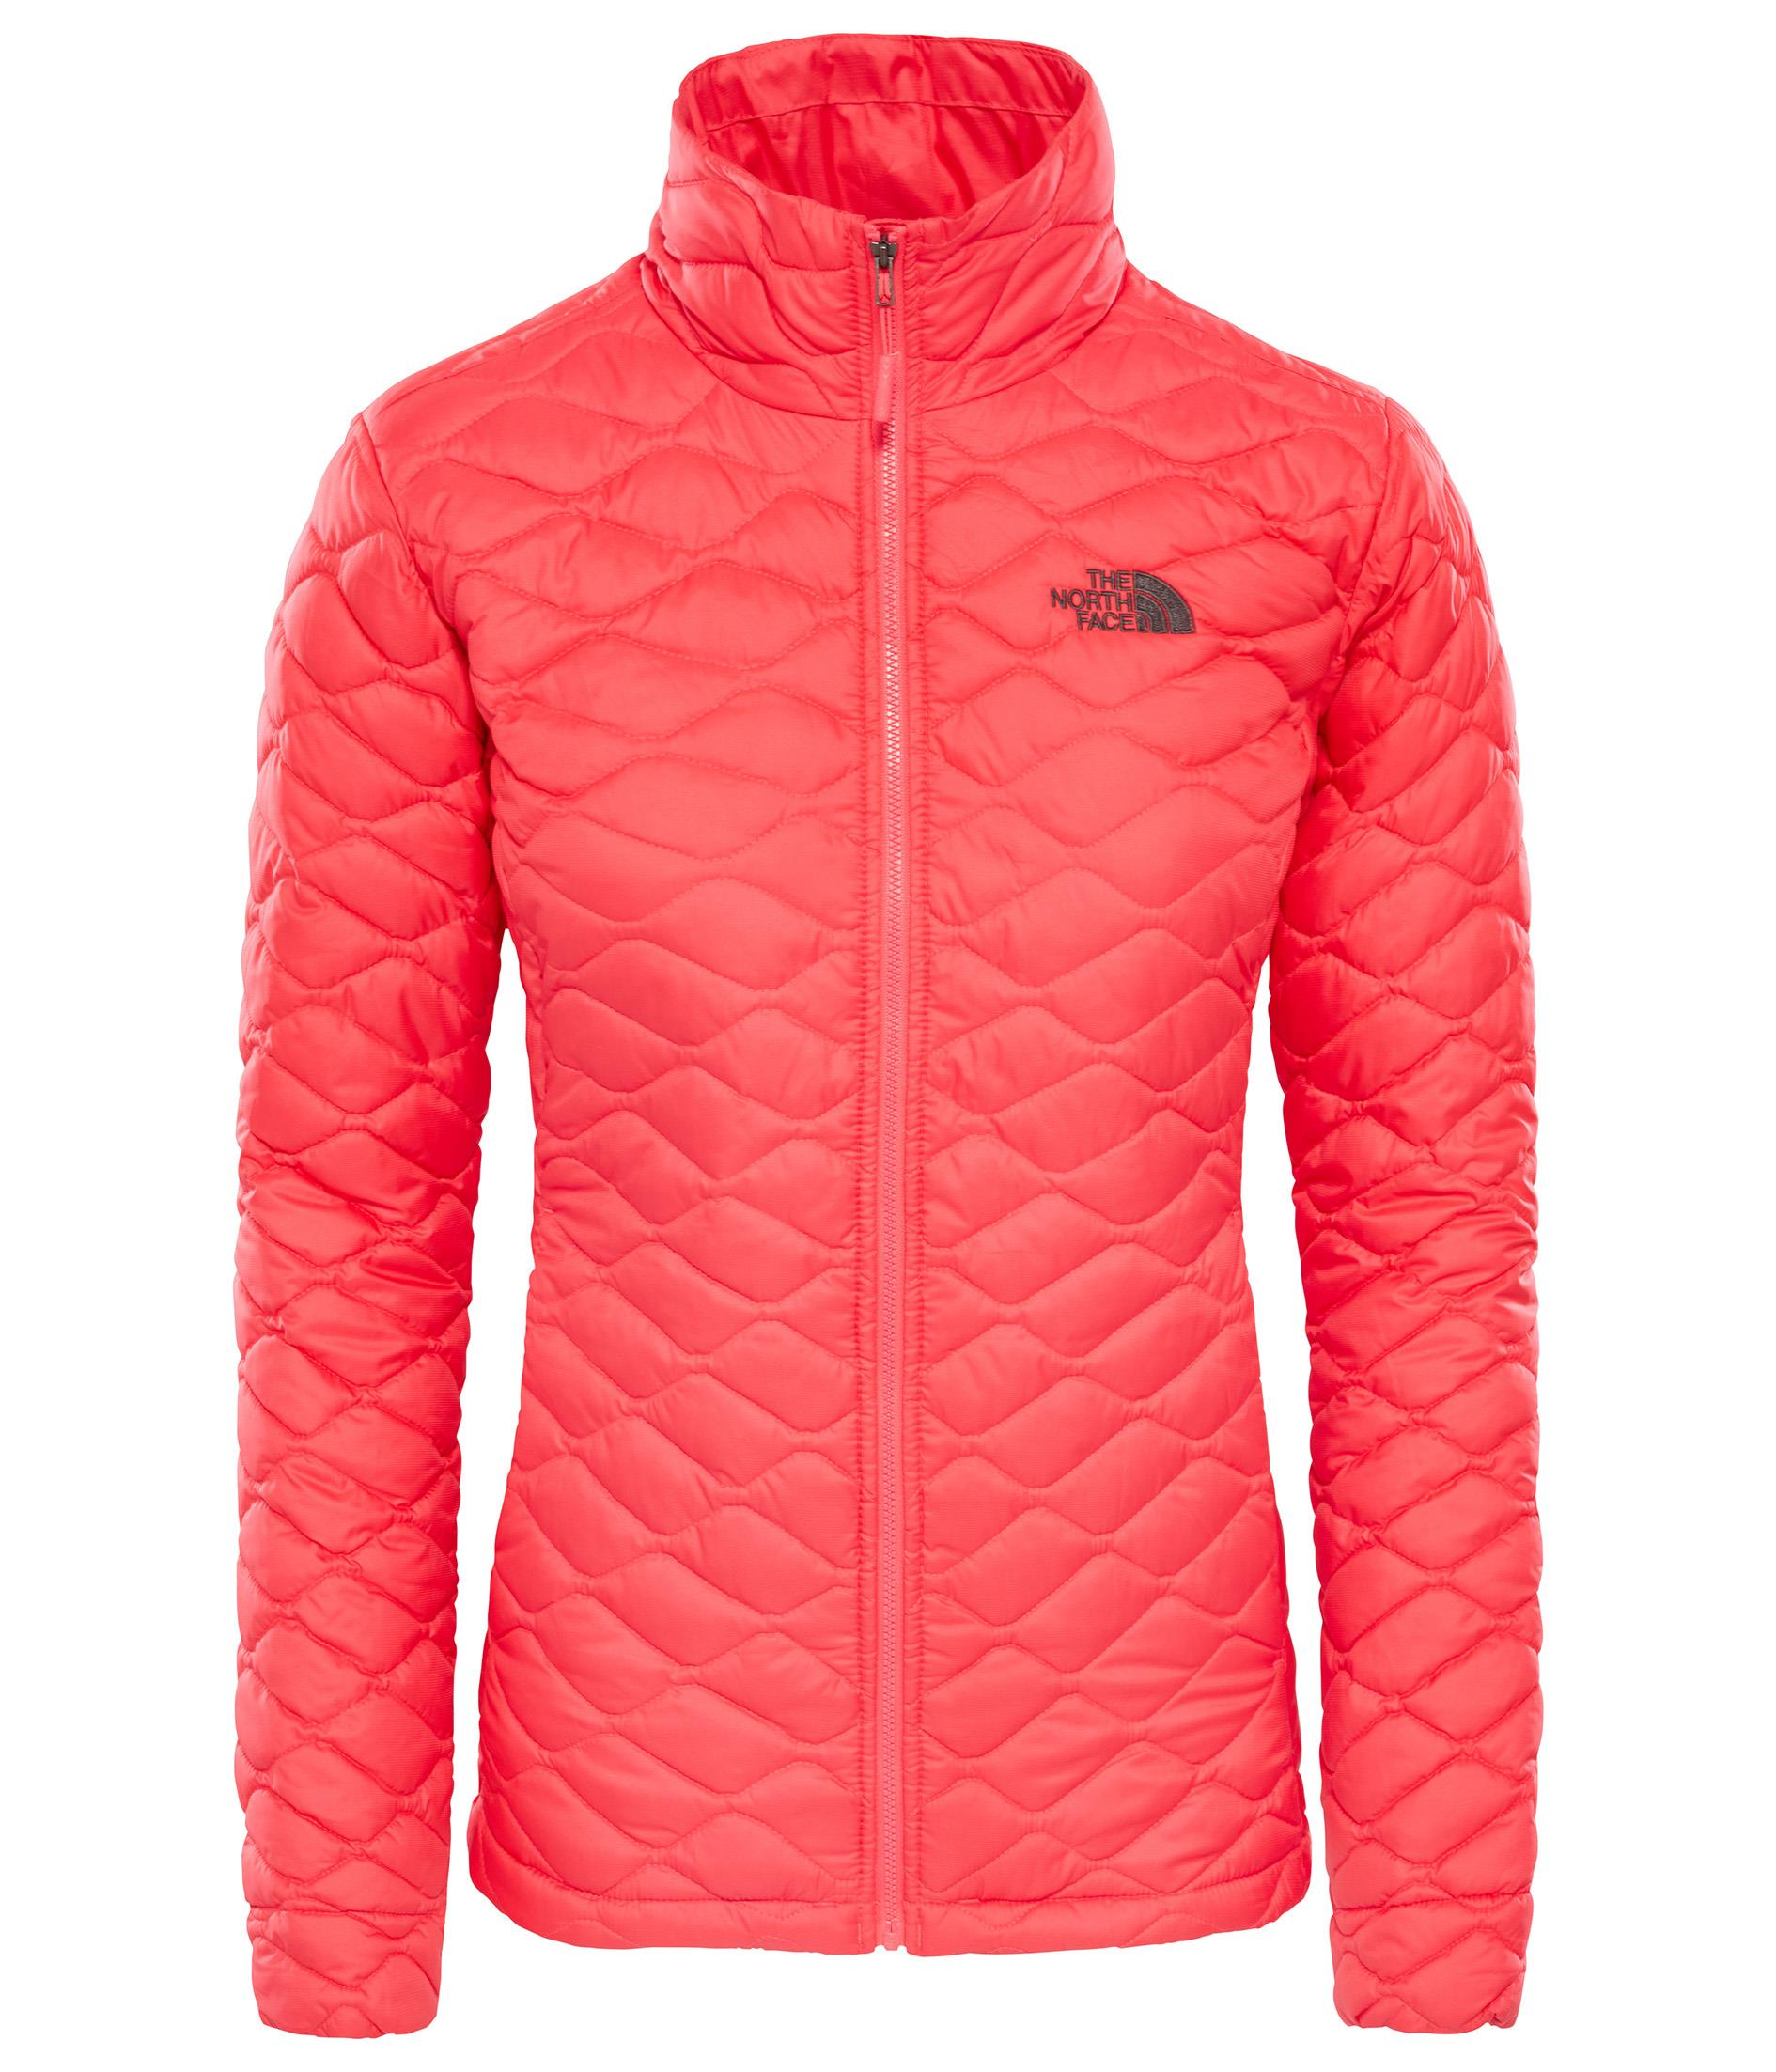 The North Face Kadın THERMOBALL Ceket T93RXF4CK